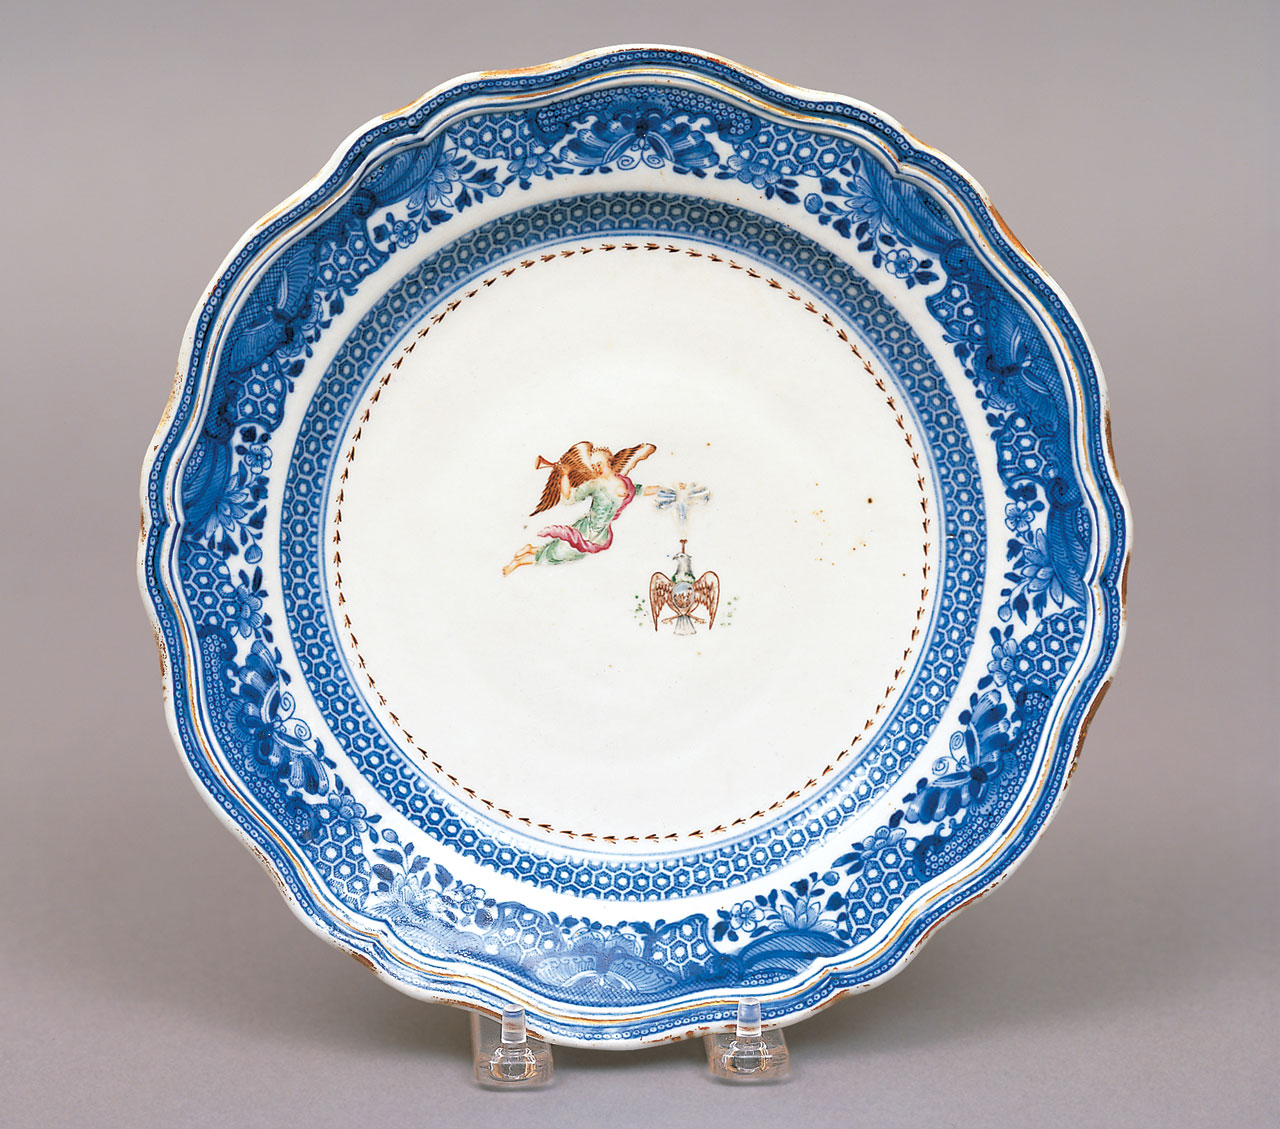 Chinese Porcelain Plates : Investing in antiques collecting chinese export porcelain